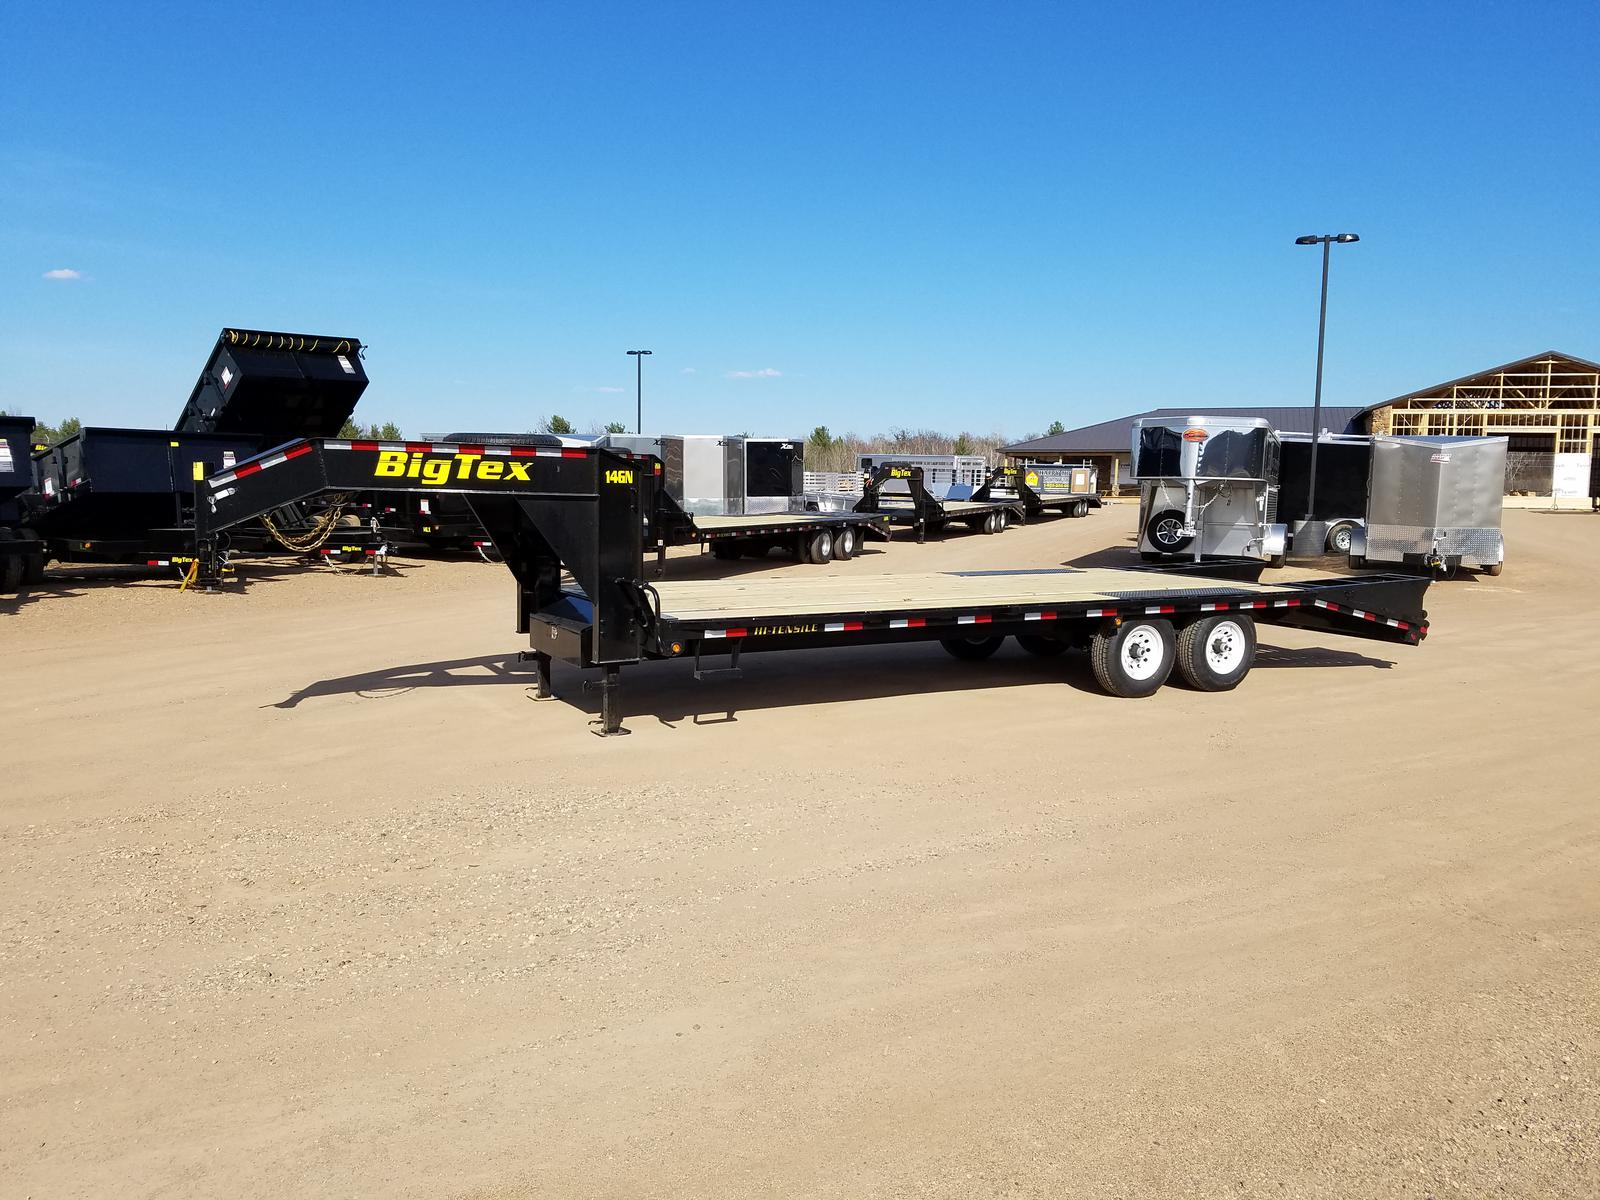 Inventory from Big Tex Trailers and High Country Union